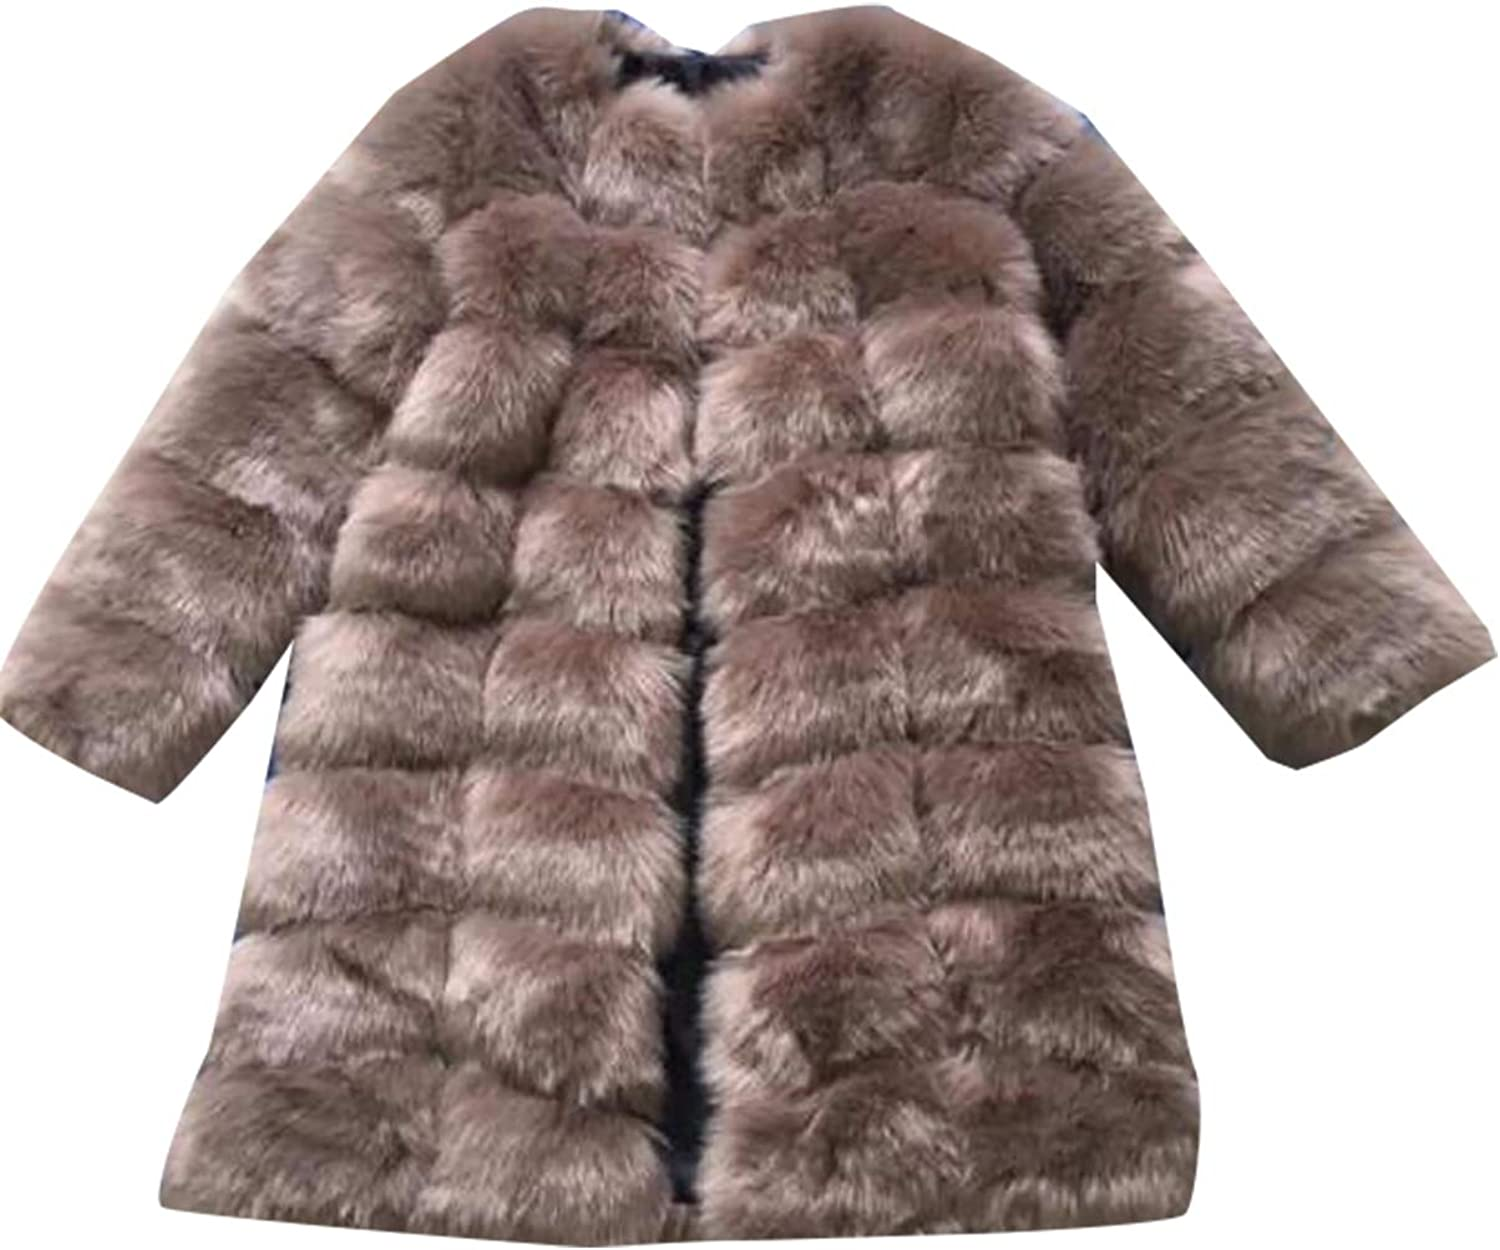 Emastor Womens Faux Fur Coat Trench Outerwear Jacket Parka Overcoat Warm Thick